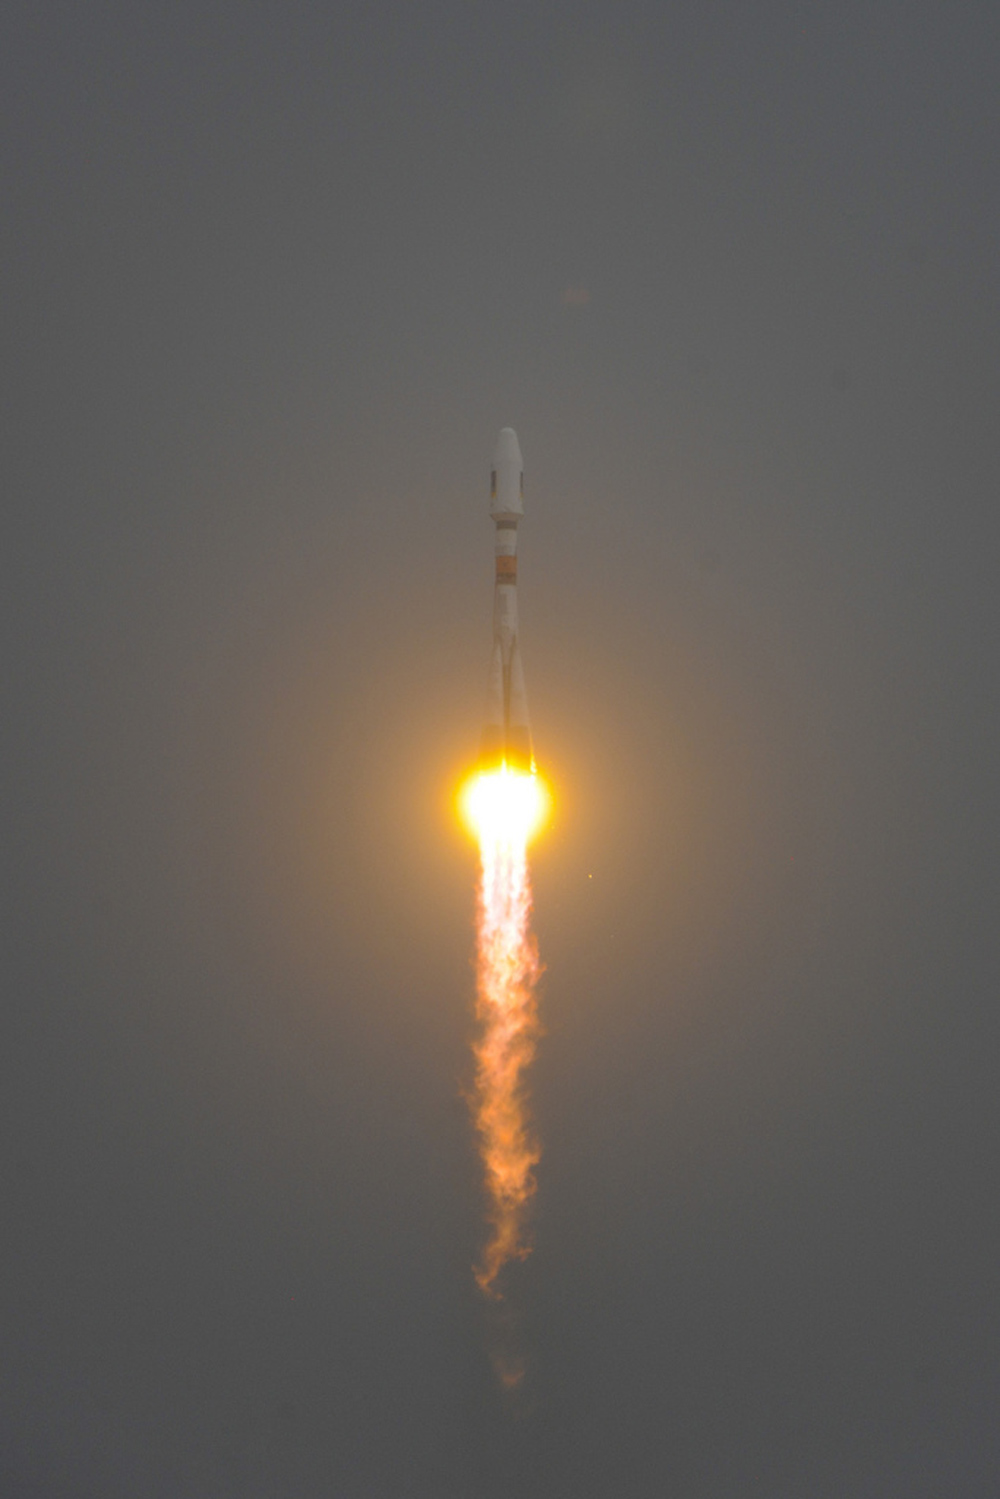 russian space rockets launch - photo #35